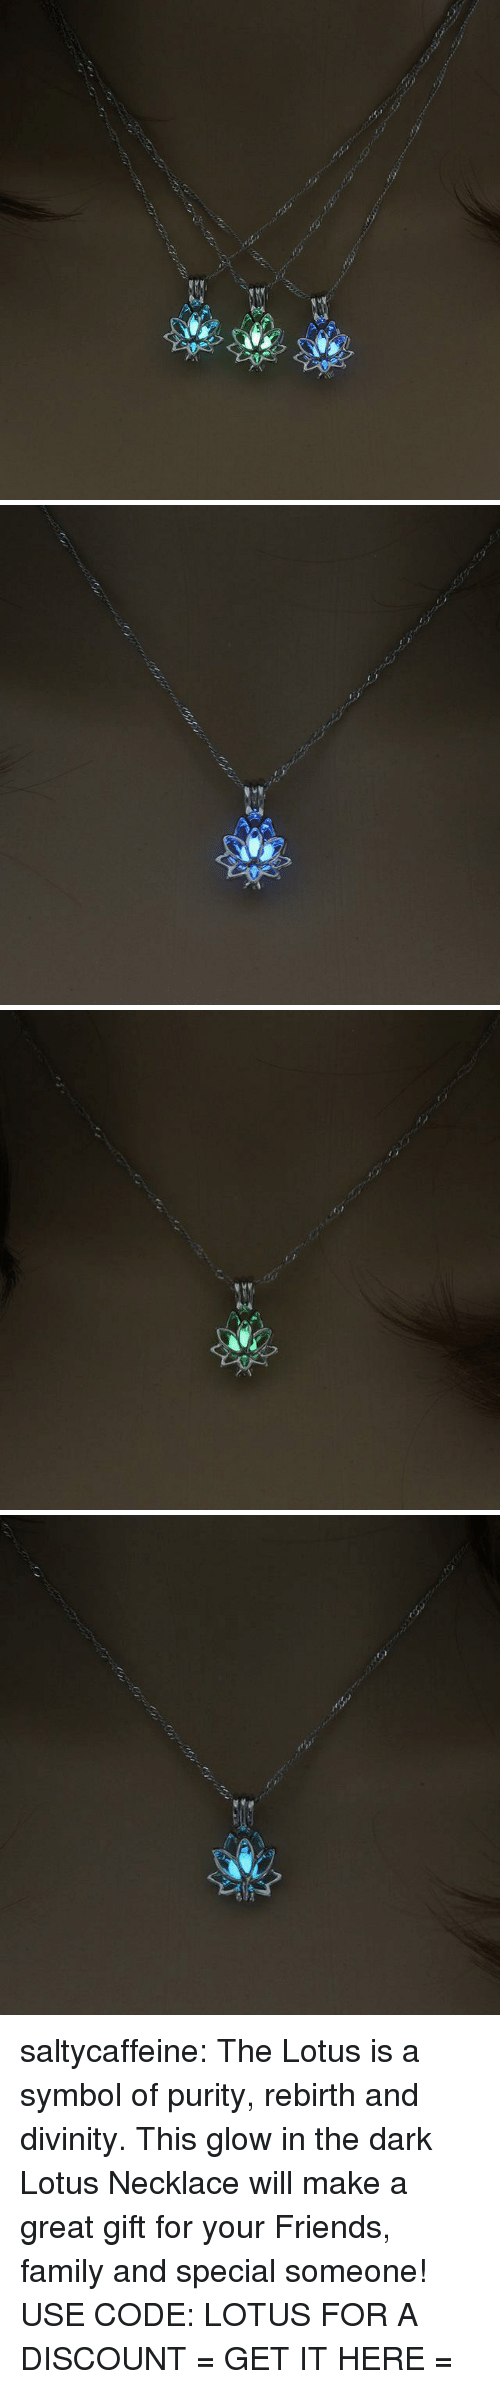 Lotus: o  ,  2 saltycaffeine:  The Lotus is a symbol of purity, rebirth and divinity. This glow in the dark Lotus Necklace will make a great gift for your Friends, family and special someone! USE CODE: LOTUS FOR A DISCOUNT = GET IT HERE =